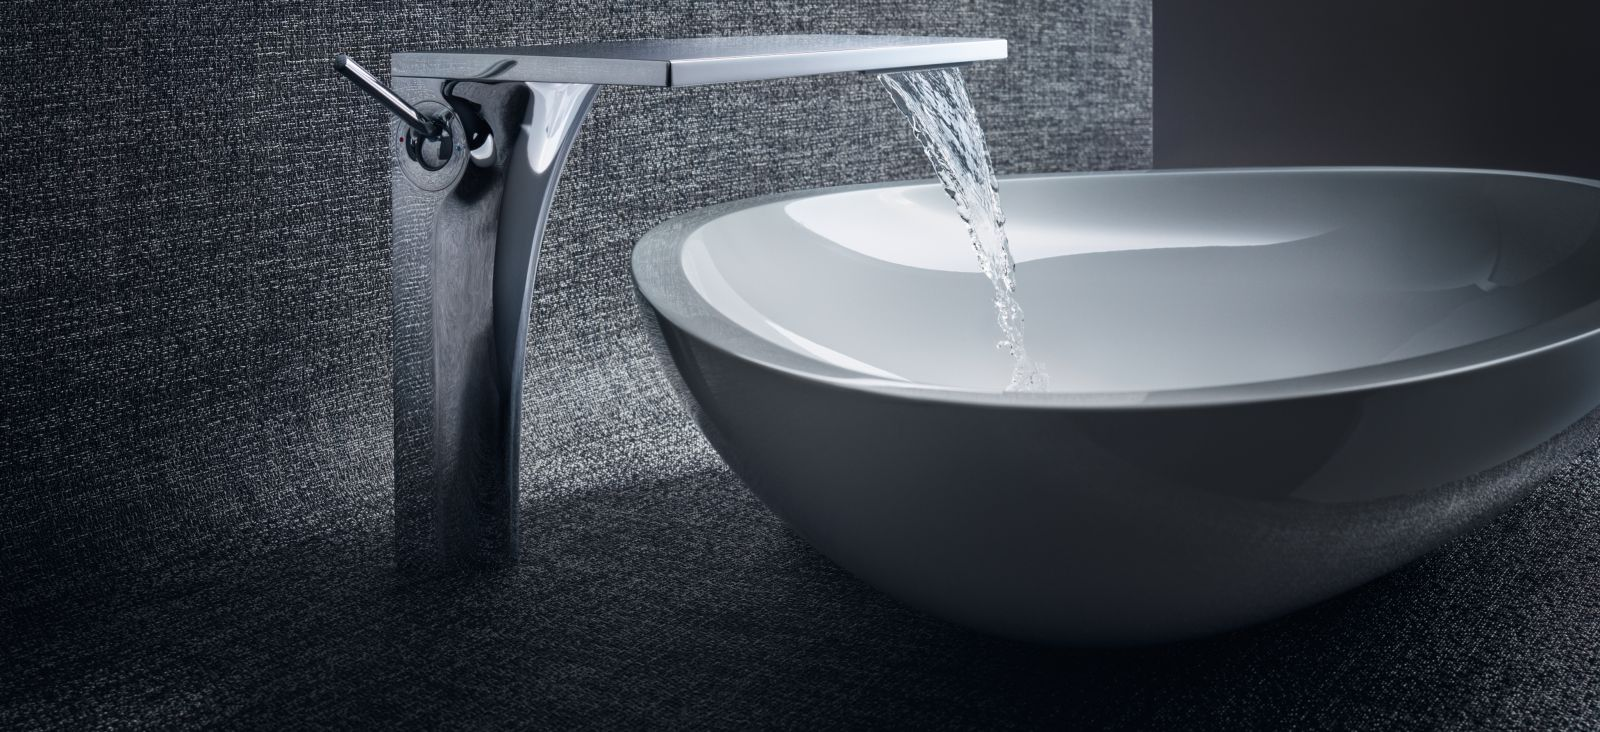 Silver faucet lets water into the sink